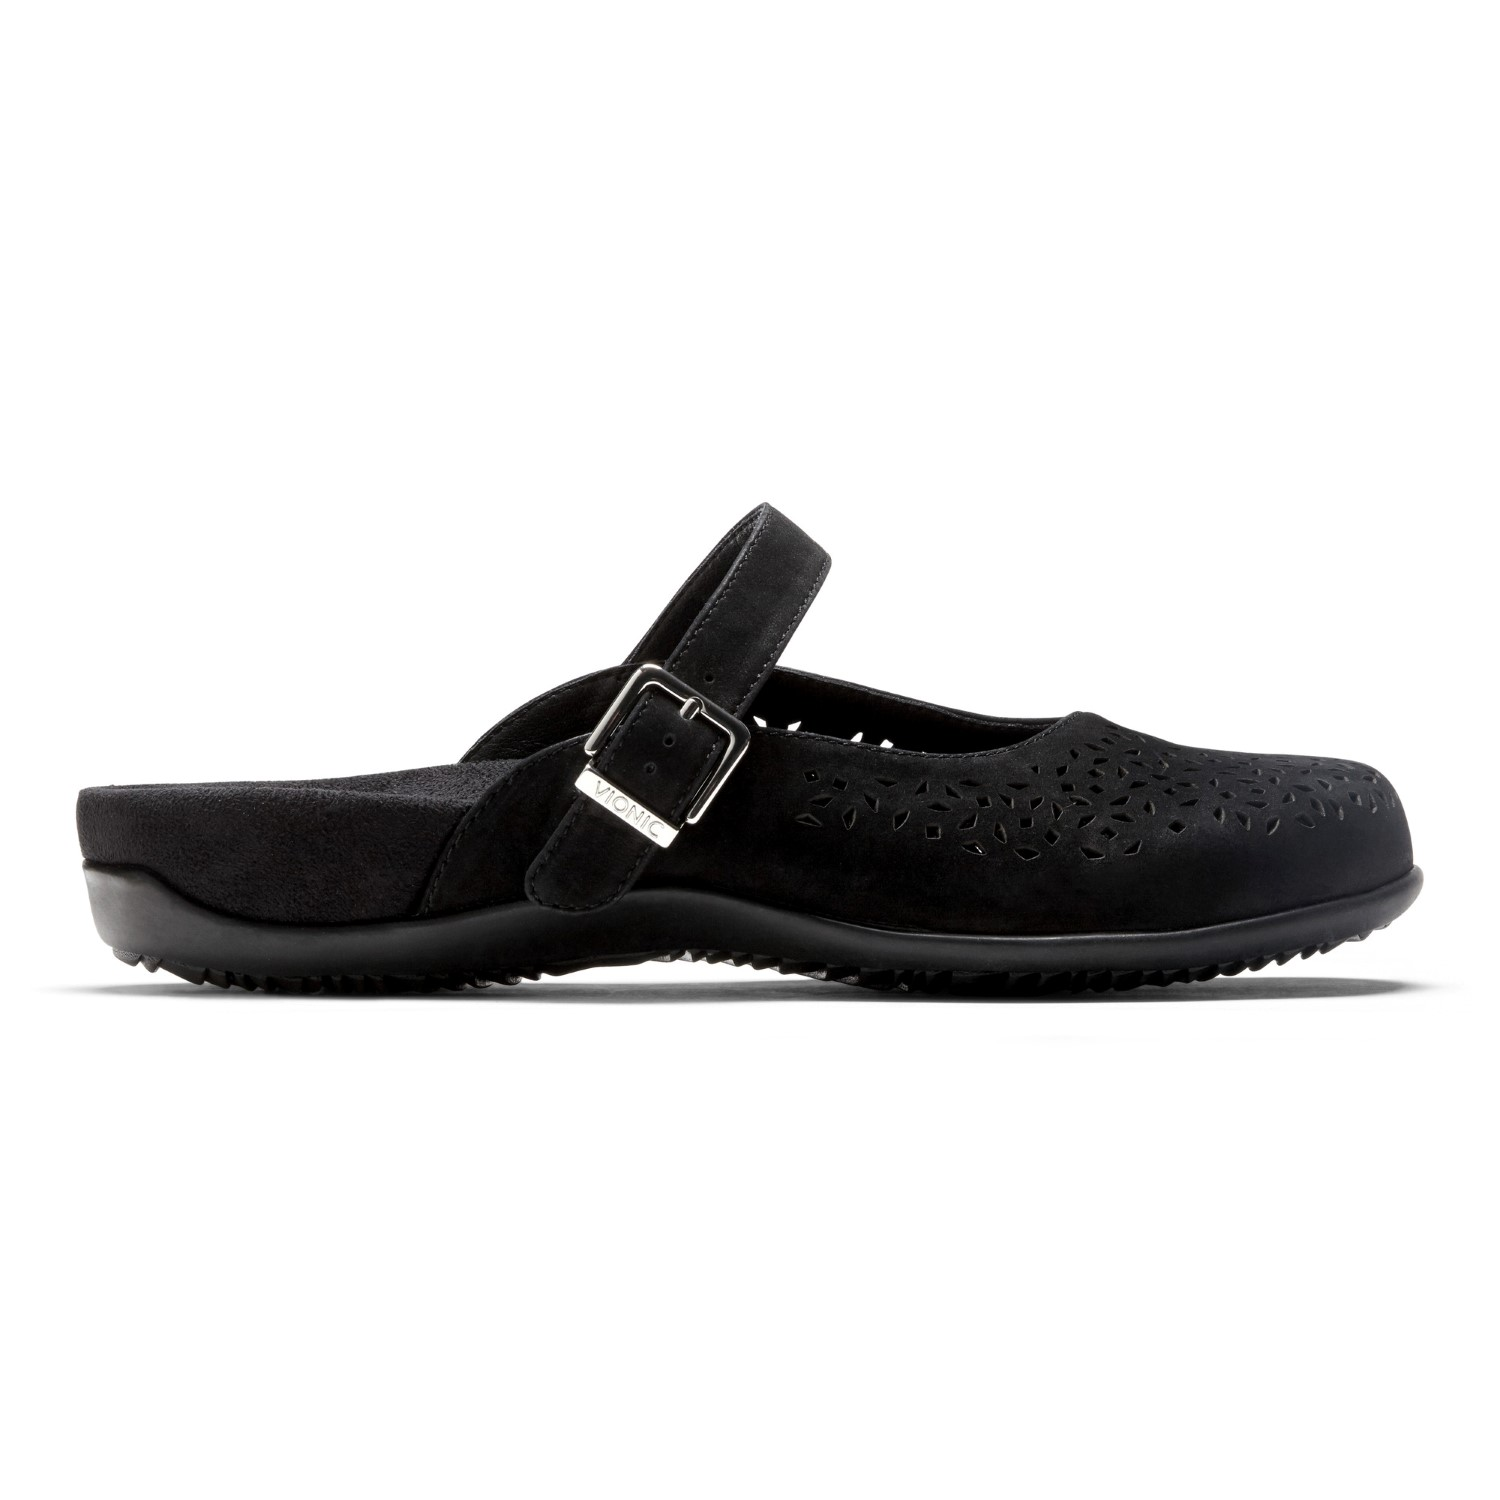 Vionic Lidia - Women's Slip-on Supportive Mule - Black right view